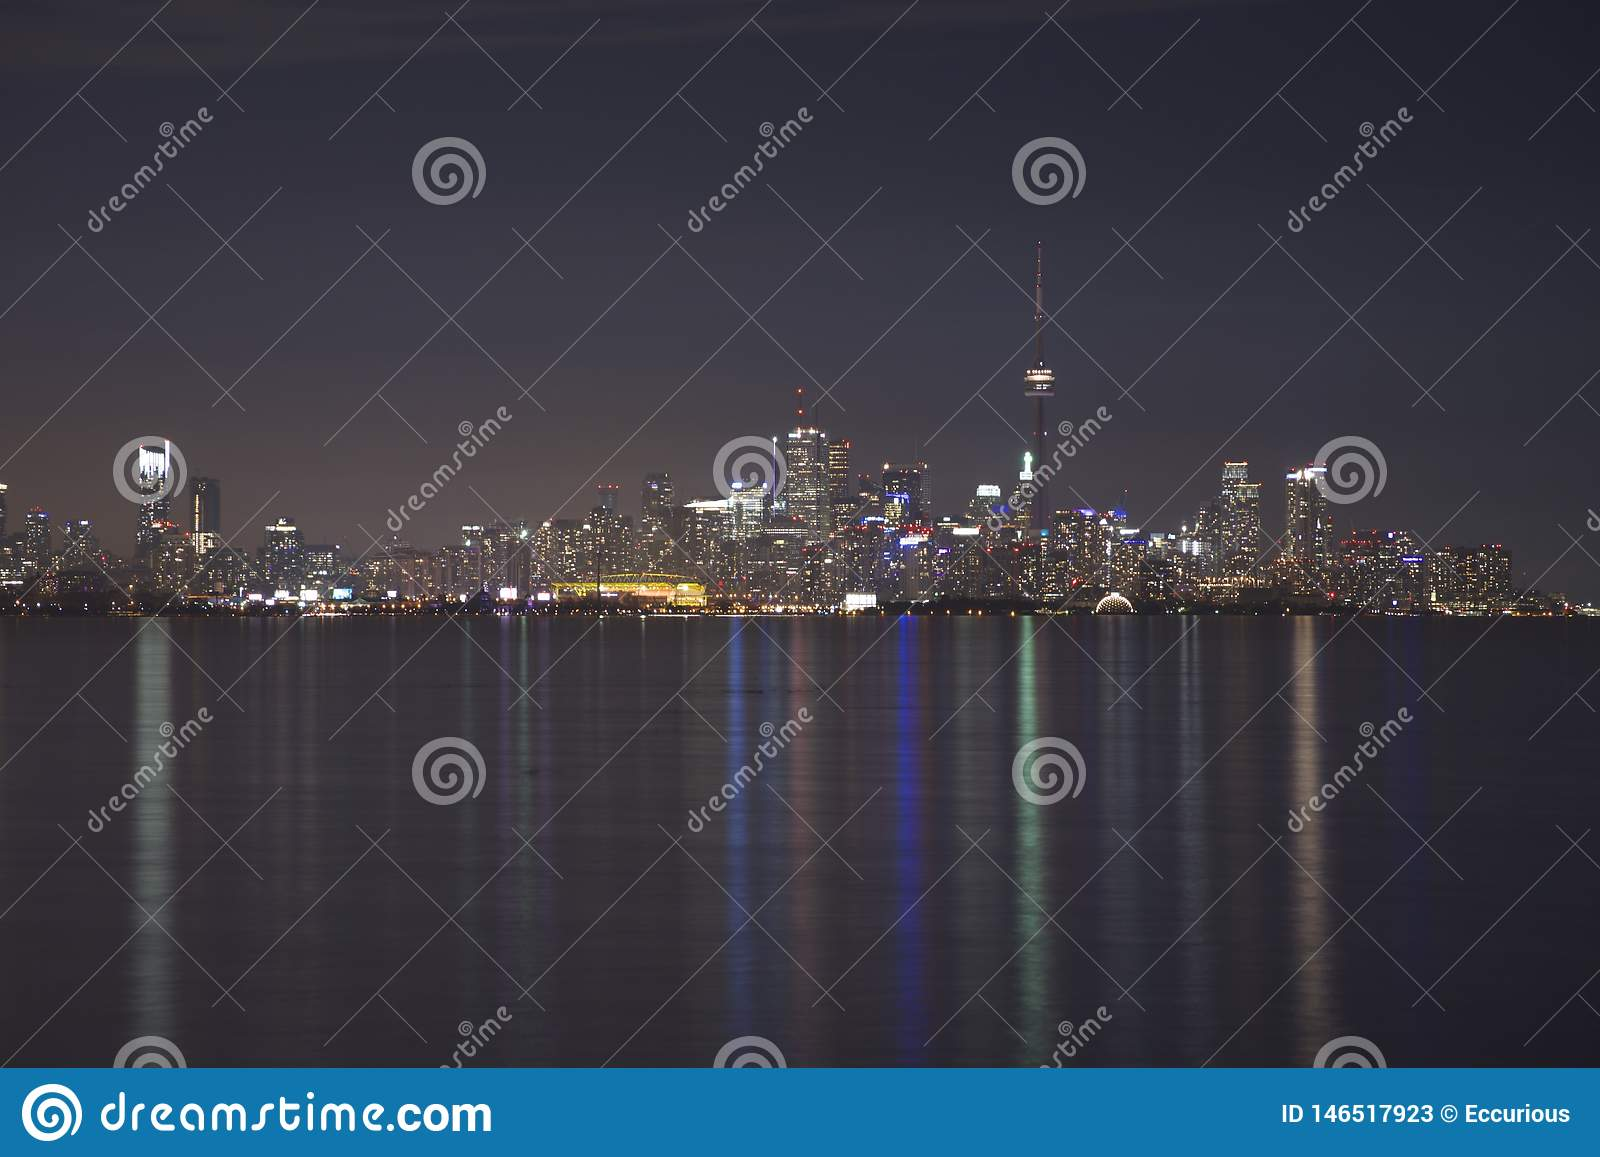 CN Tower and Toronto`s skyline at night